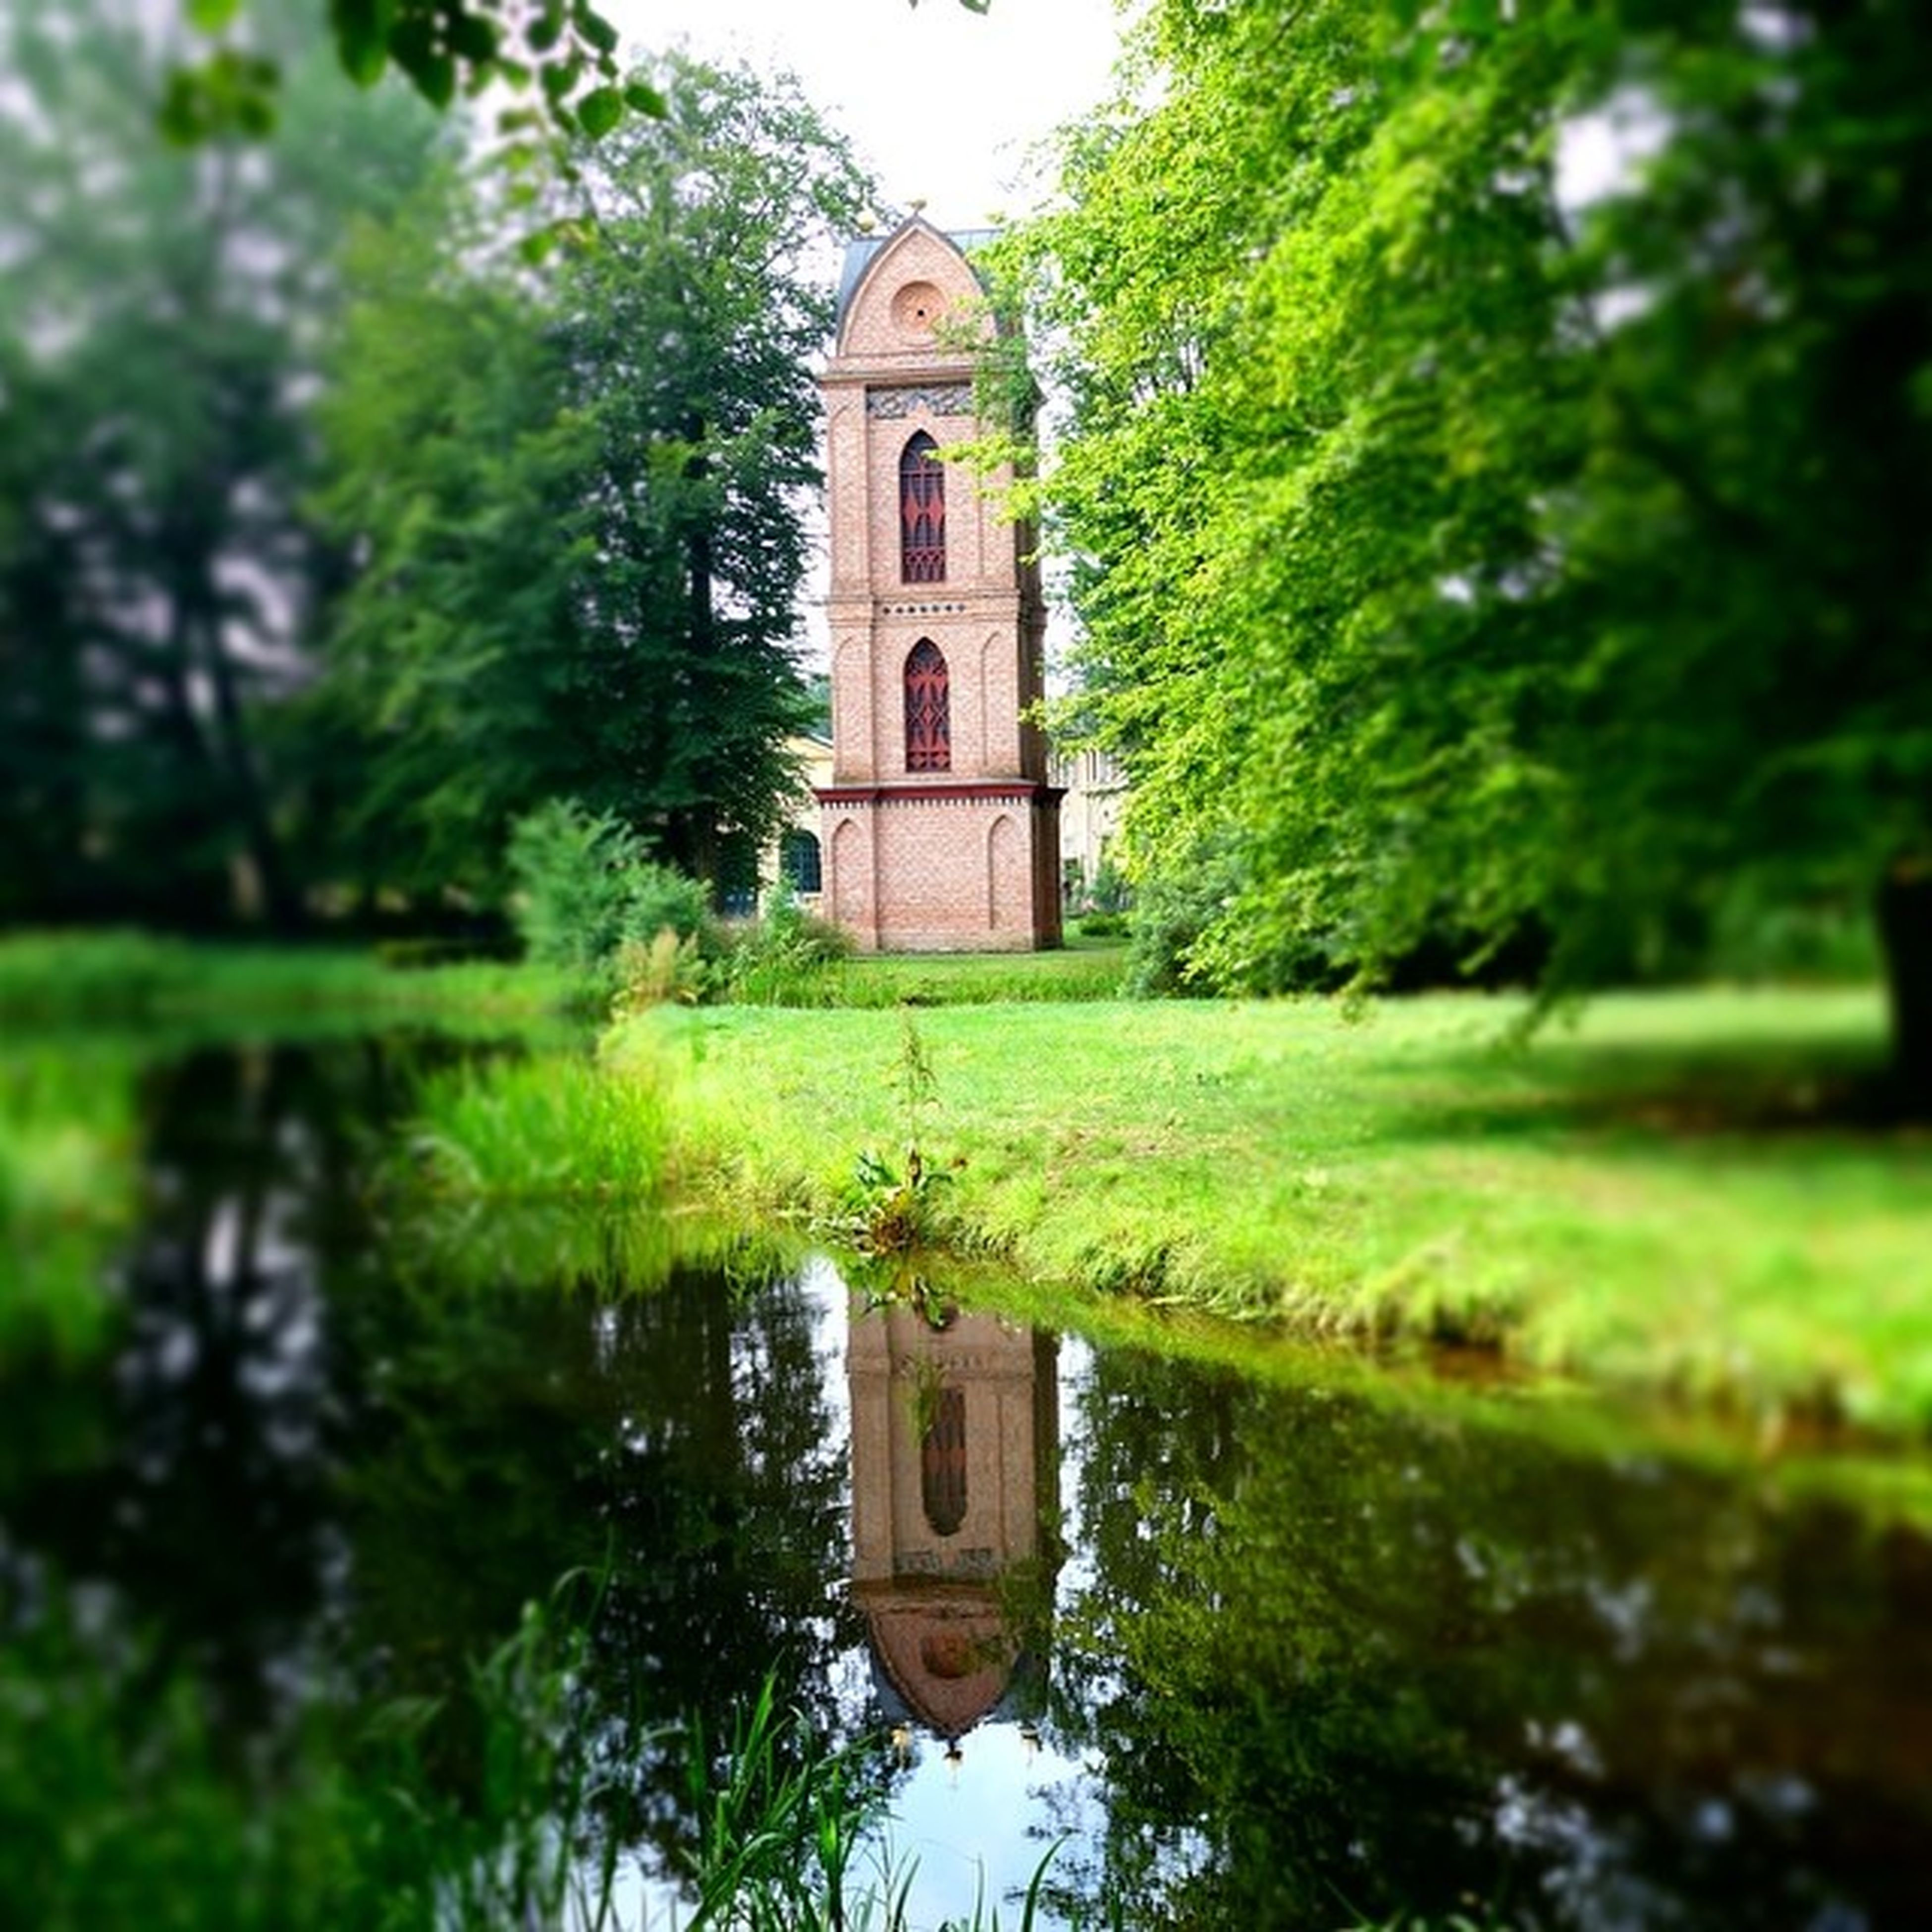 tree, building exterior, architecture, built structure, green color, reflection, growth, religion, house, church, place of worship, nature, spirituality, plant, day, outdoors, tranquility, no people, water